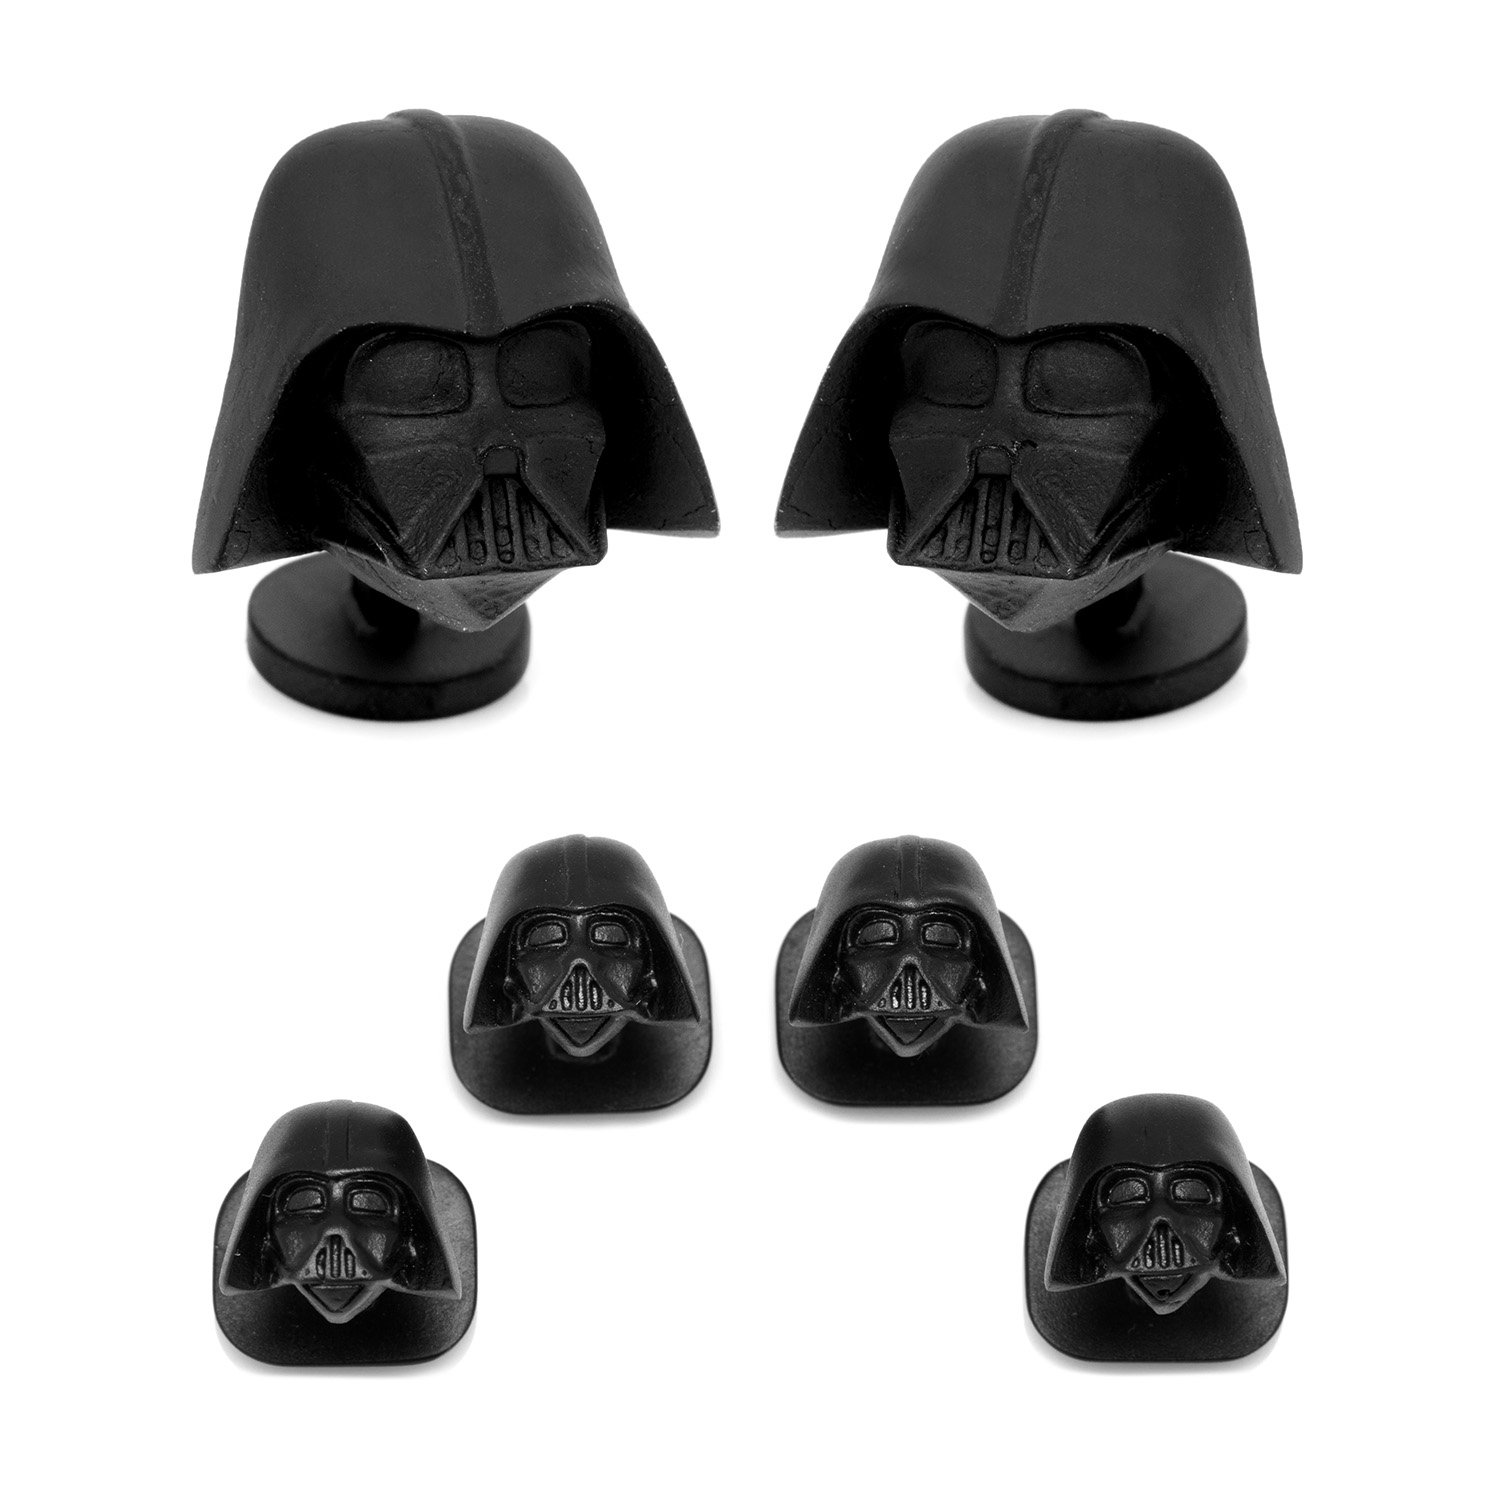 CUFFLINKS INC 3D Darth Vader Head Stud Set (Black)